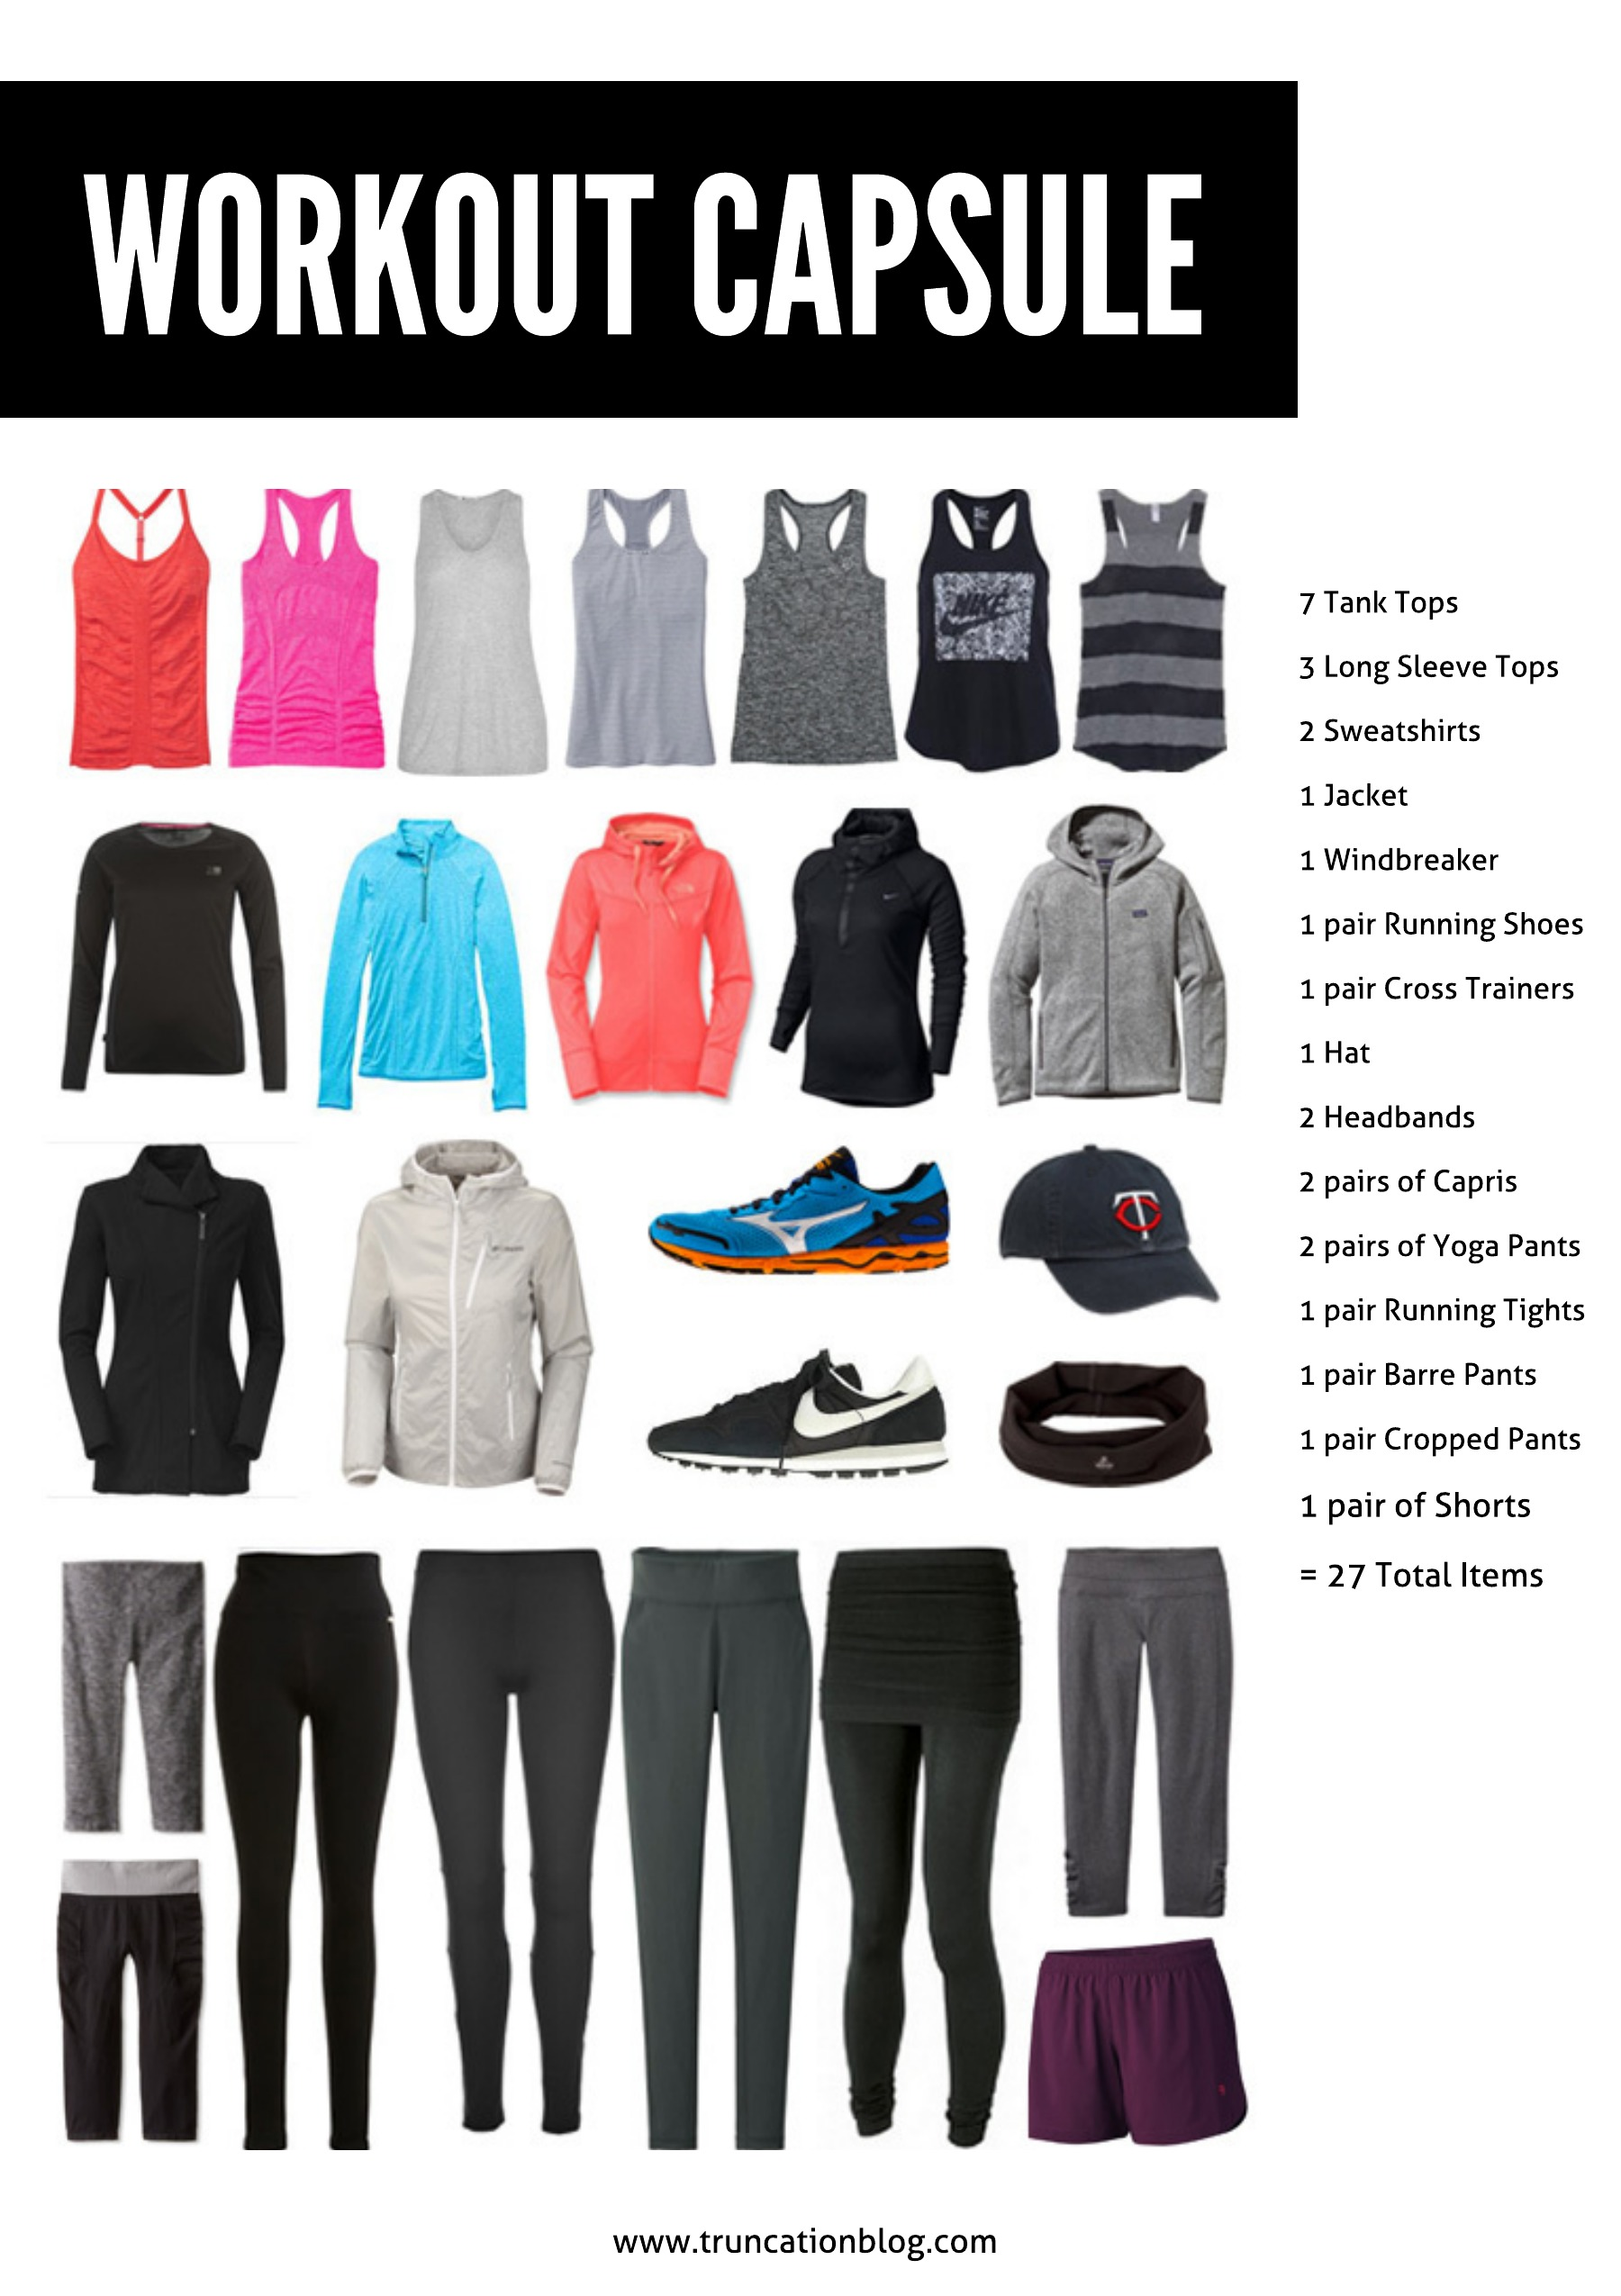 The Juetta West brand produces women's fitness fashion that looks as striking on the street as in the studio. Our fitness fashion is designed to mix with your closet or our Lifestyle Collection to create crossover fashion providing convenience, time savings and value to your busy life.